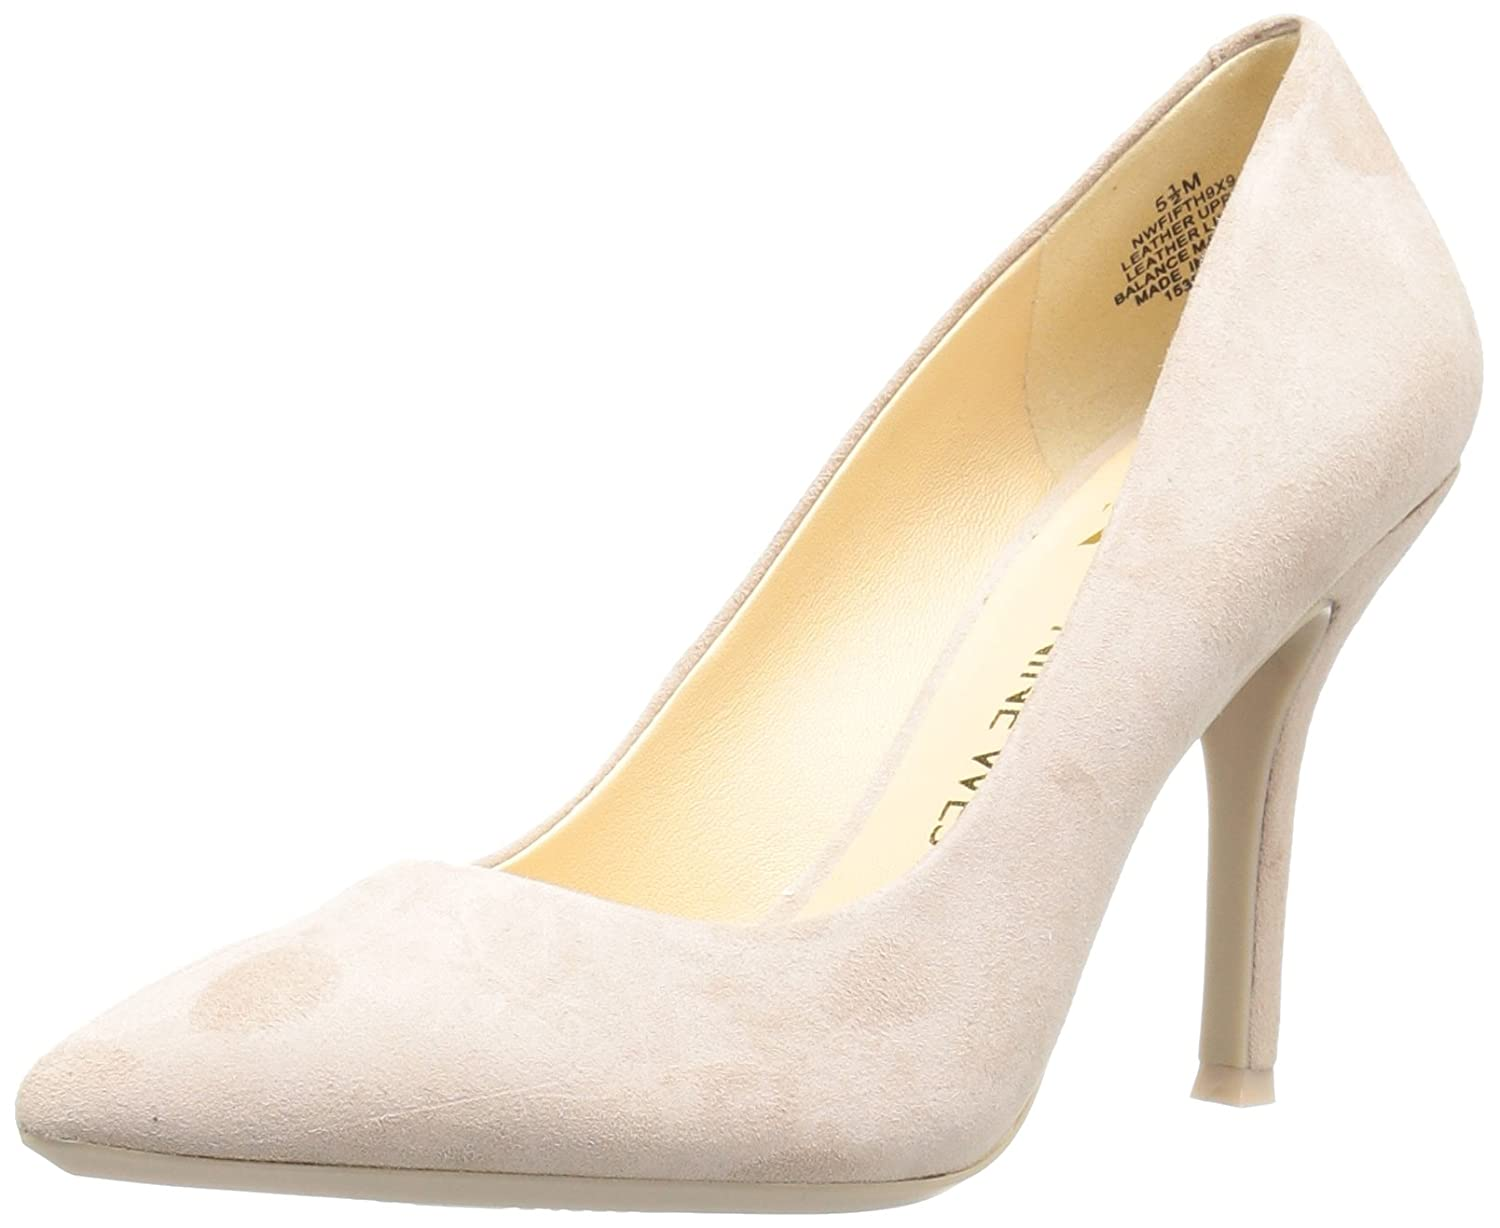 Nine West Women's FIFTH9X Fifth Pointy Toe Pumps B01MYV760H 6 B(M) US|Natural Suede